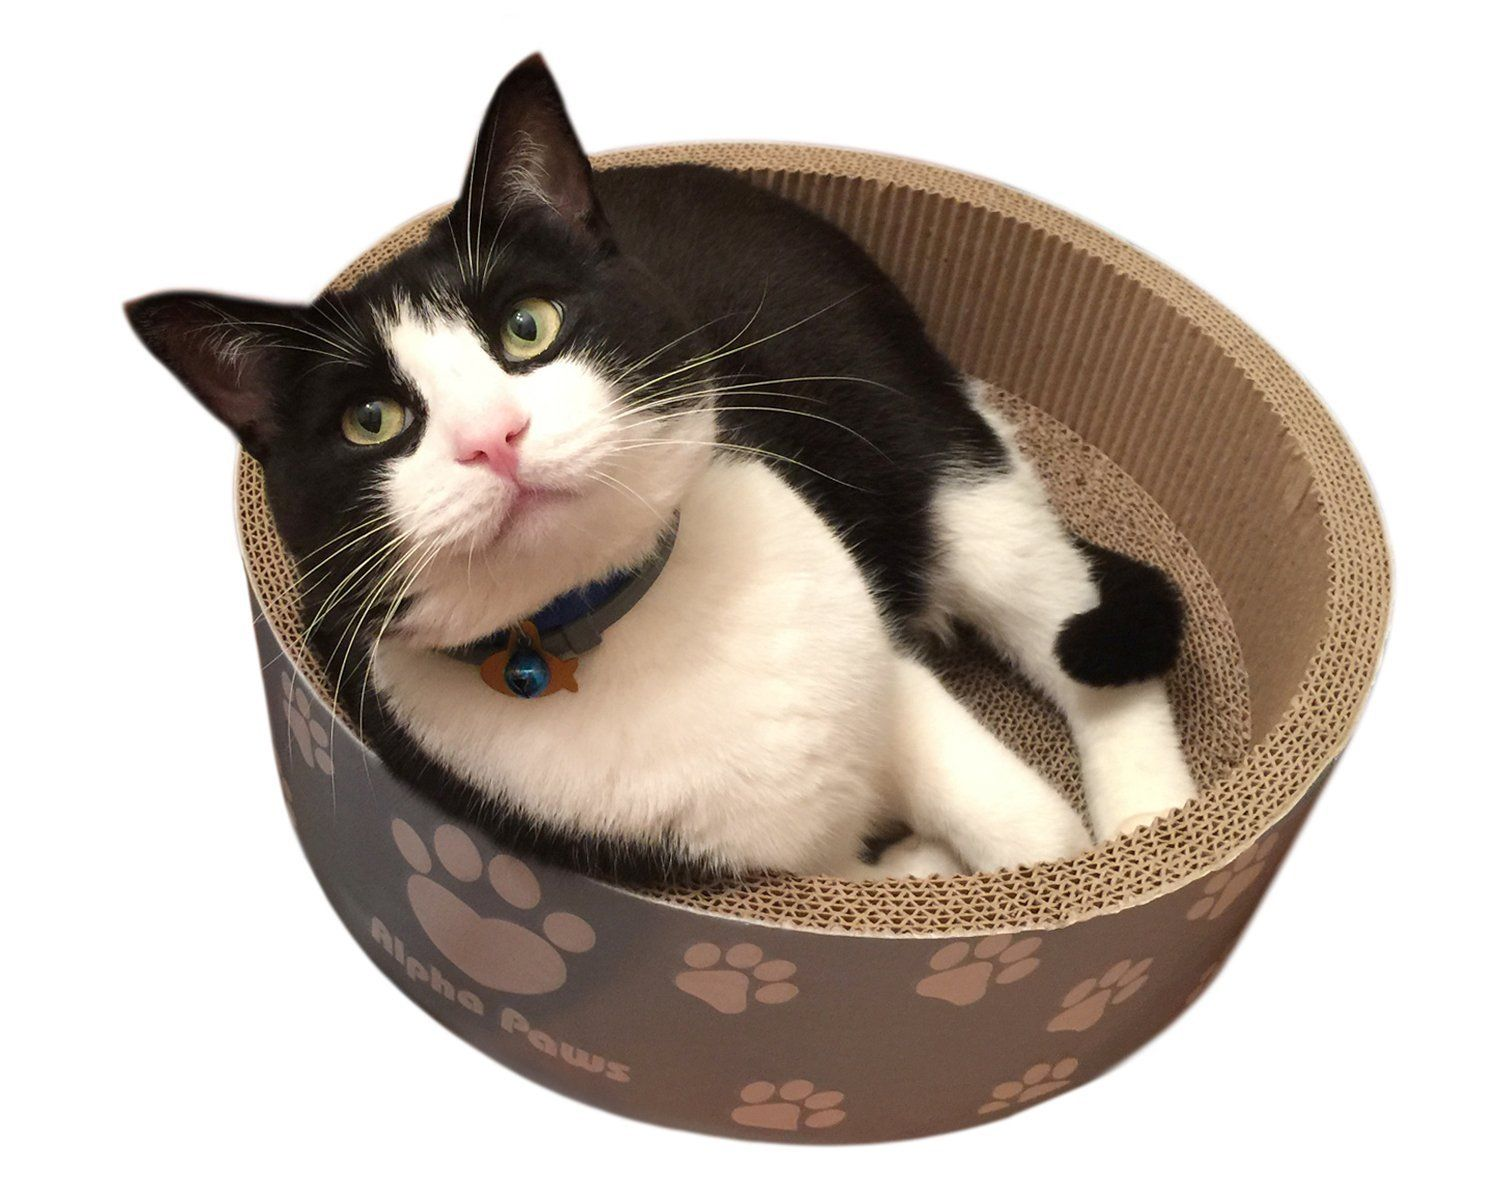 Communication on this topic: How to Clean Cat Beds, how-to-clean-cat-beds/